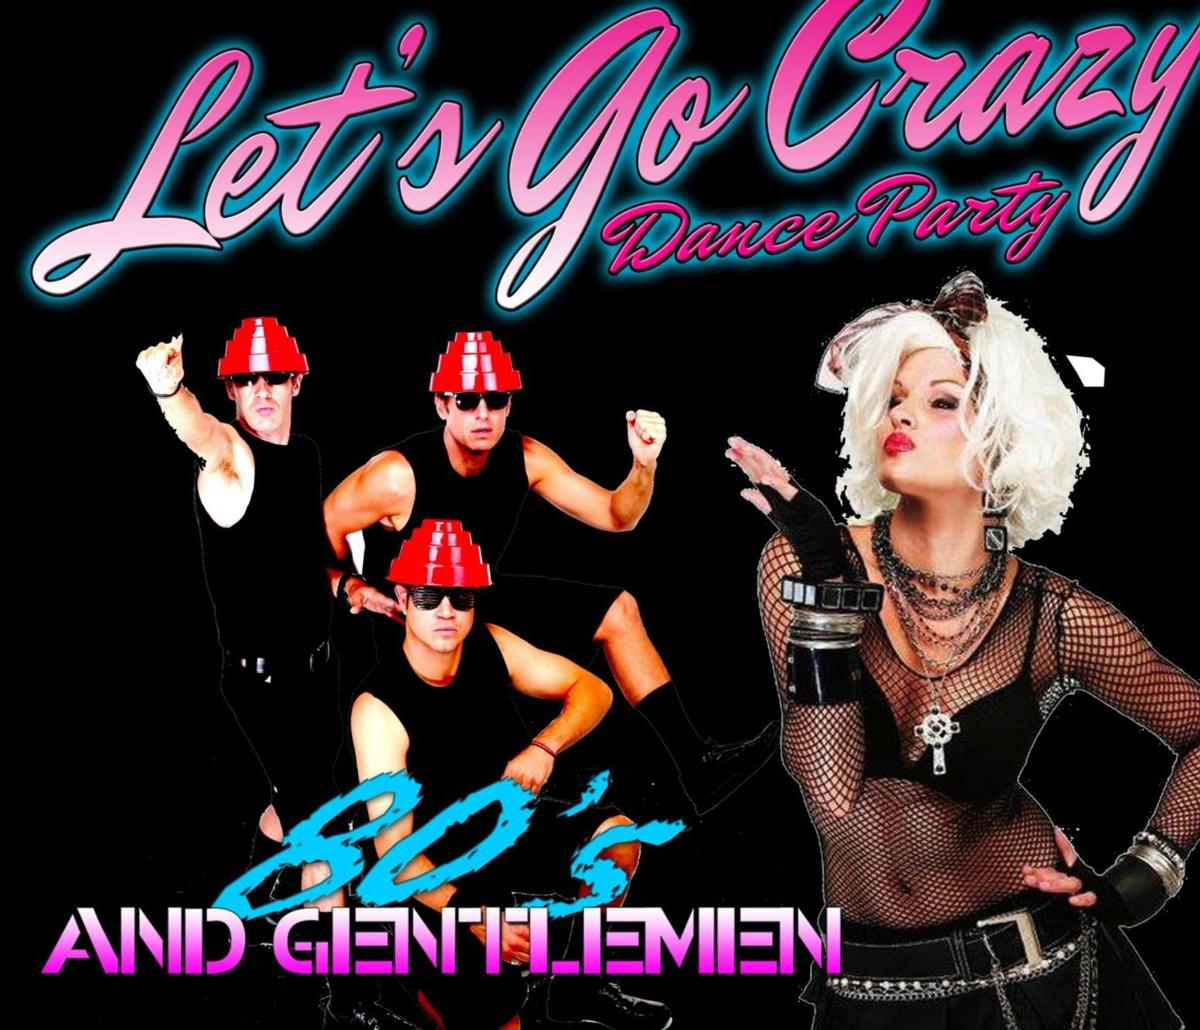 Let's Go Crazy with 80's and Gentlemen | Entertainment